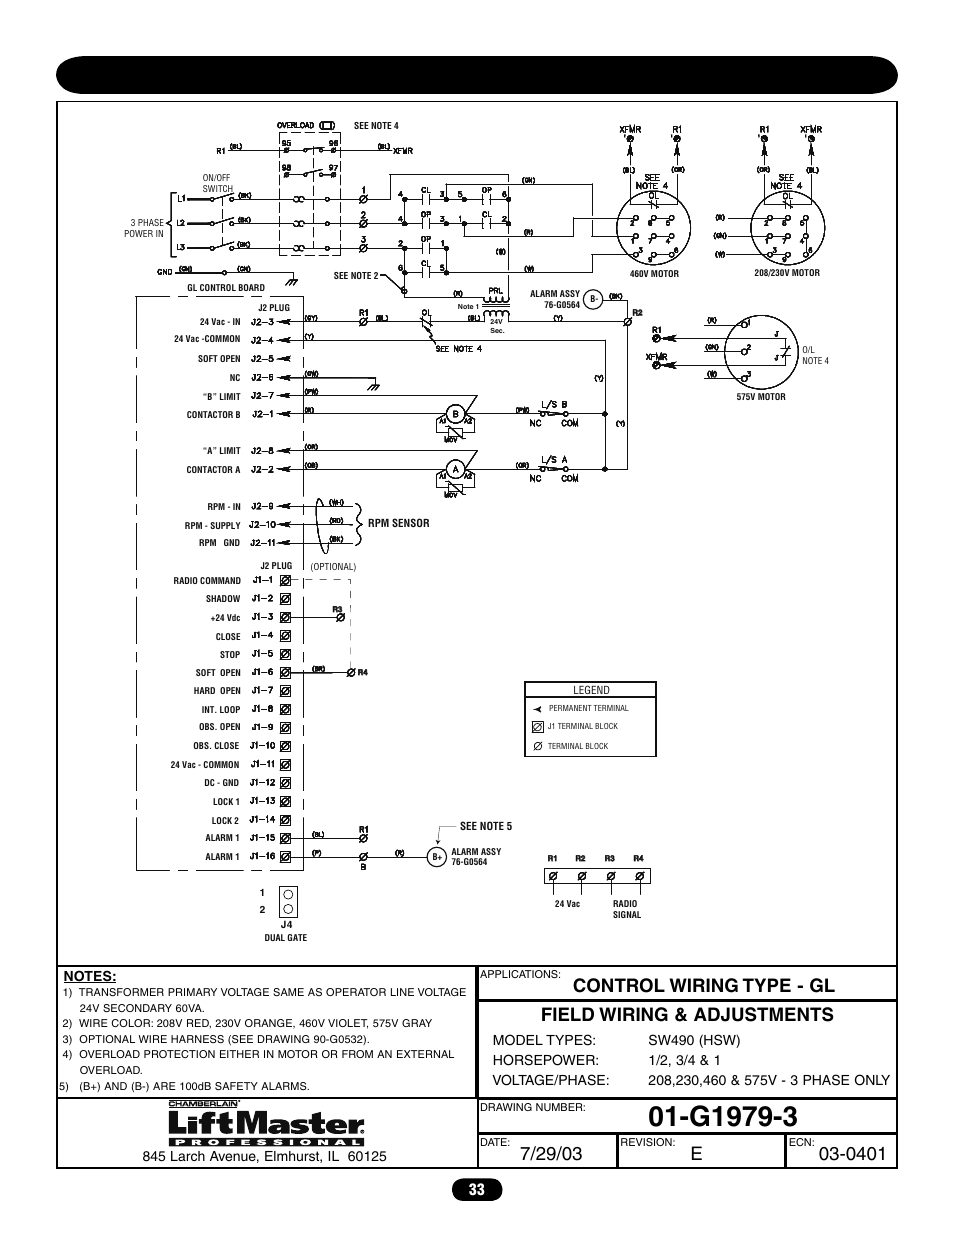 hight resolution of three phase wiring diagram sw490 chamberlain liftmaster professional sw470 user manual page